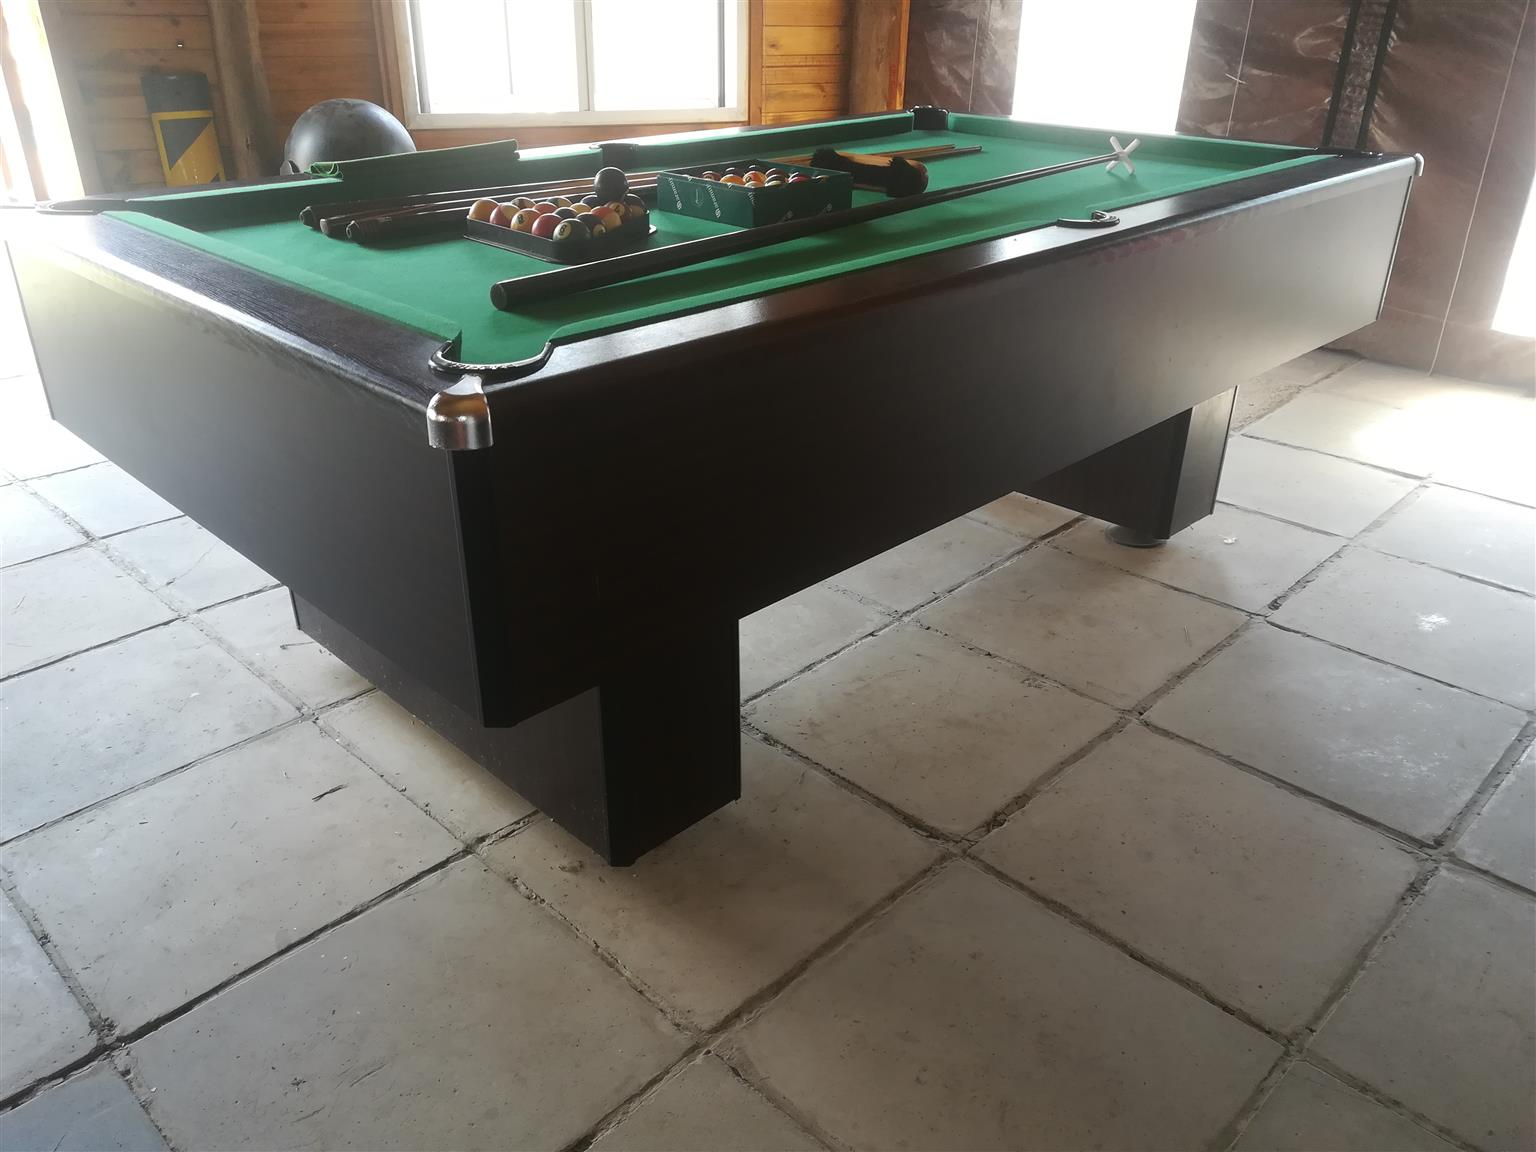 Mahogany Slate Bed Pool Table Junk Mail - Pool table without slate